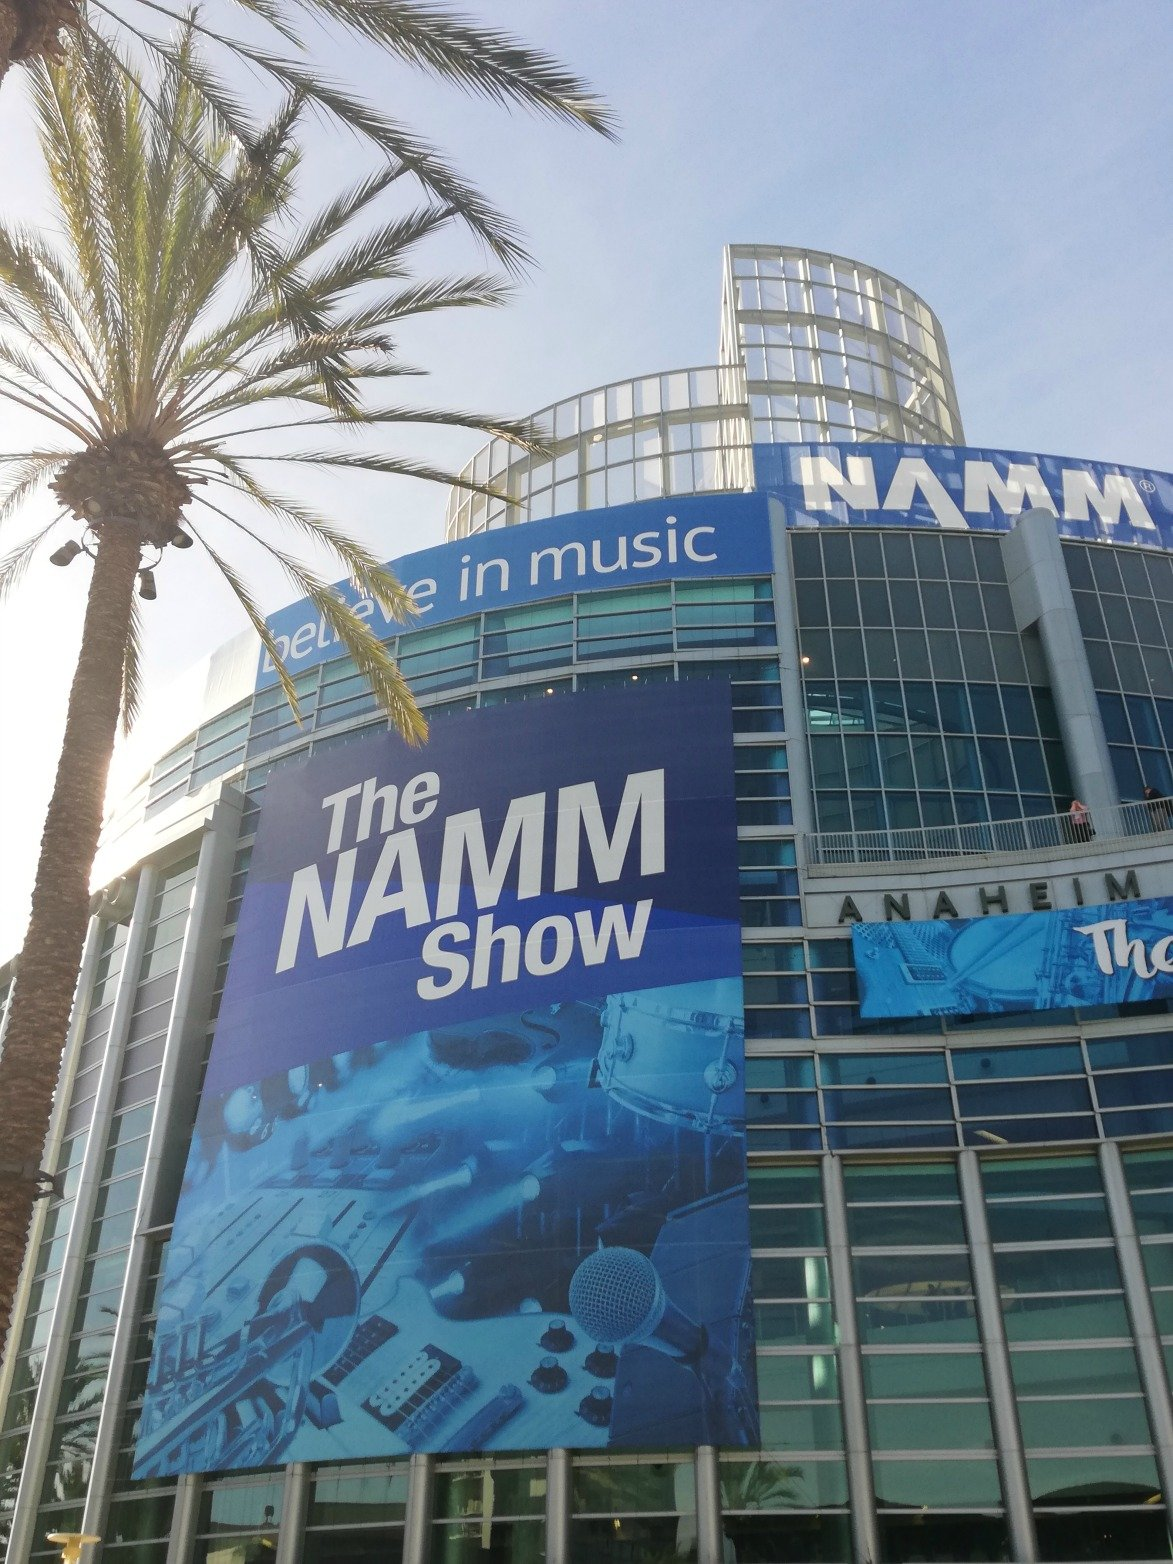 Namm Show 2019 Anaheim California Musical Instruments Industry Exhibition Believe in Music RingoMusic Live Report